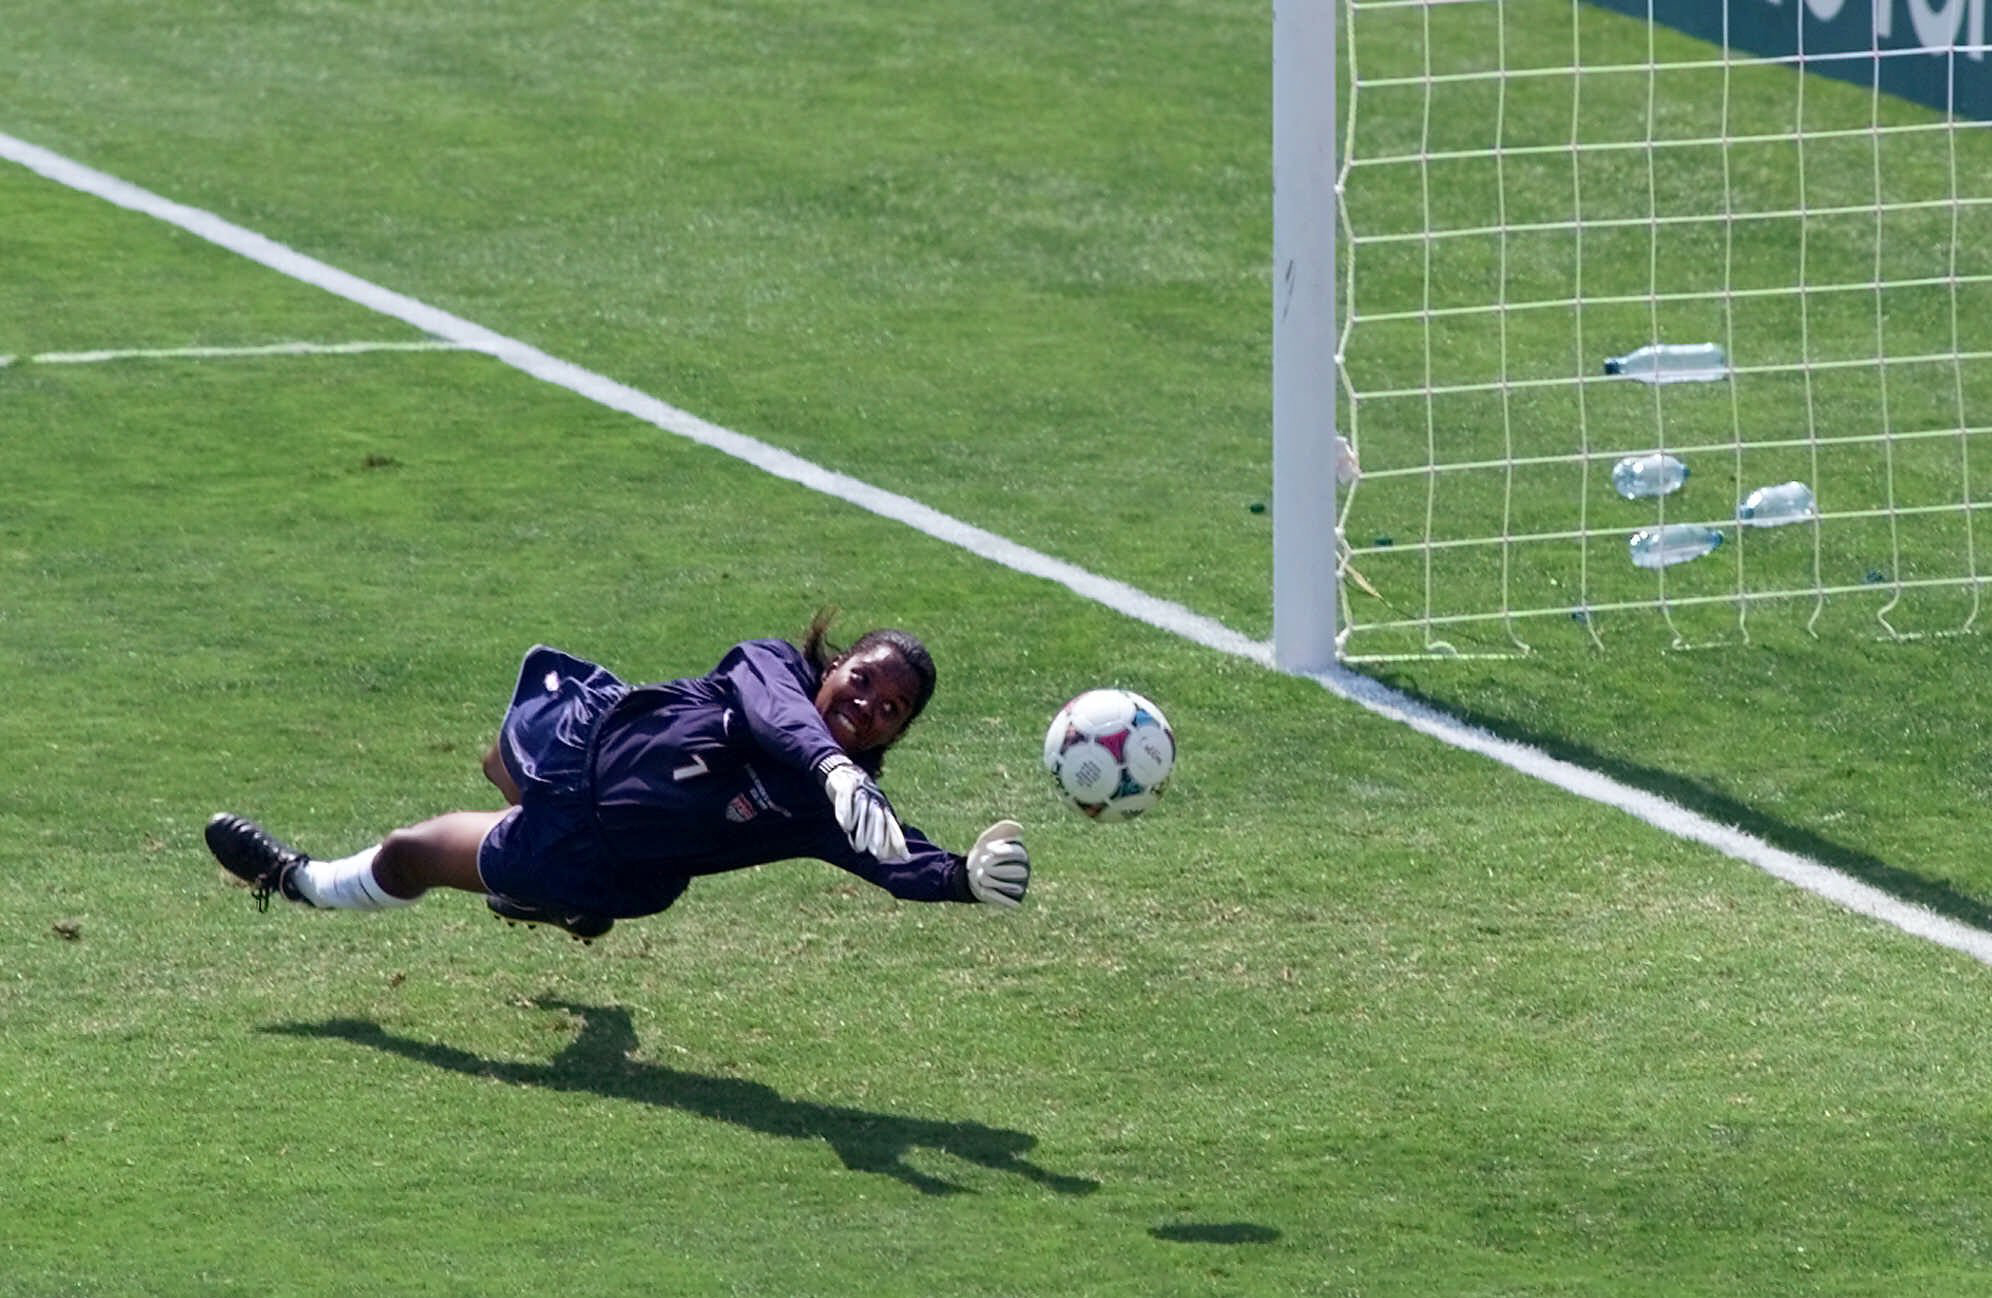 United States' goal keeper Briana Scurry (1) blocks a penalty shootout kick by China's Ying Liu during overtime of the Women's World Cup Final at the Rose Bowl in Pasadena, Calif., Saturday, July 10, 1999.